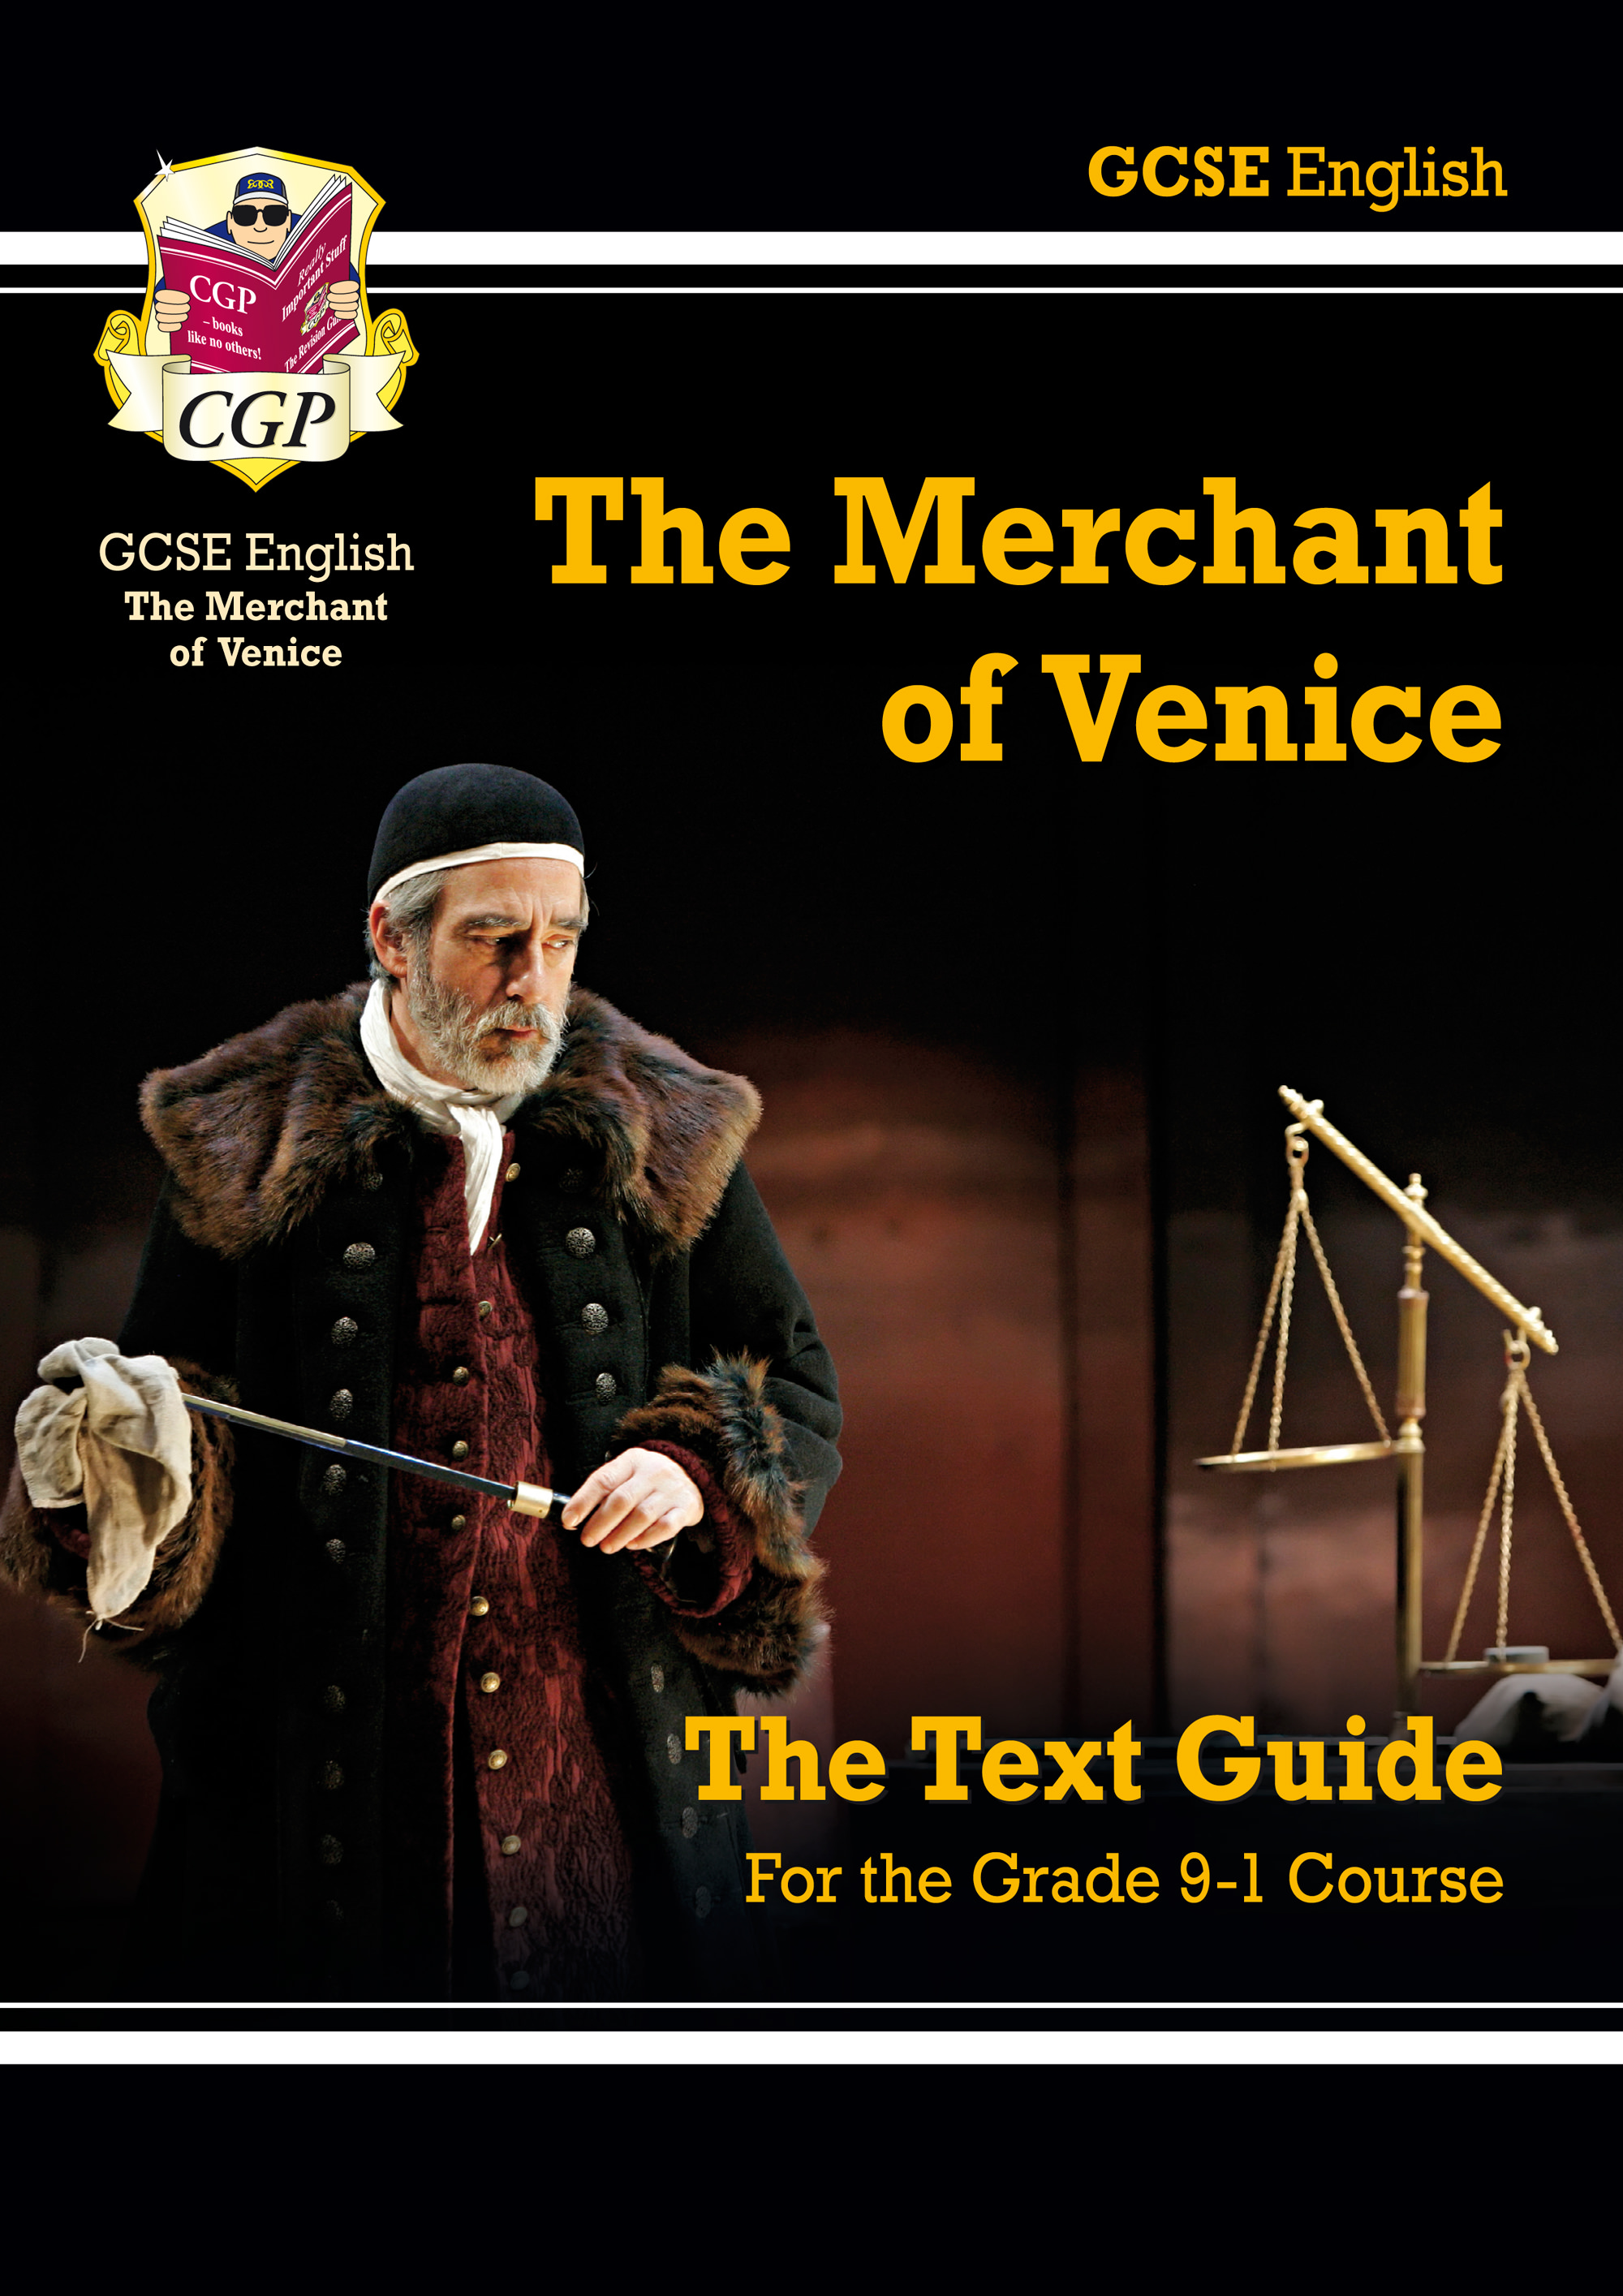 ETMV41 - Grade 9-1 GCSE English Shakespeare Text Guide - The Merchant of Venice